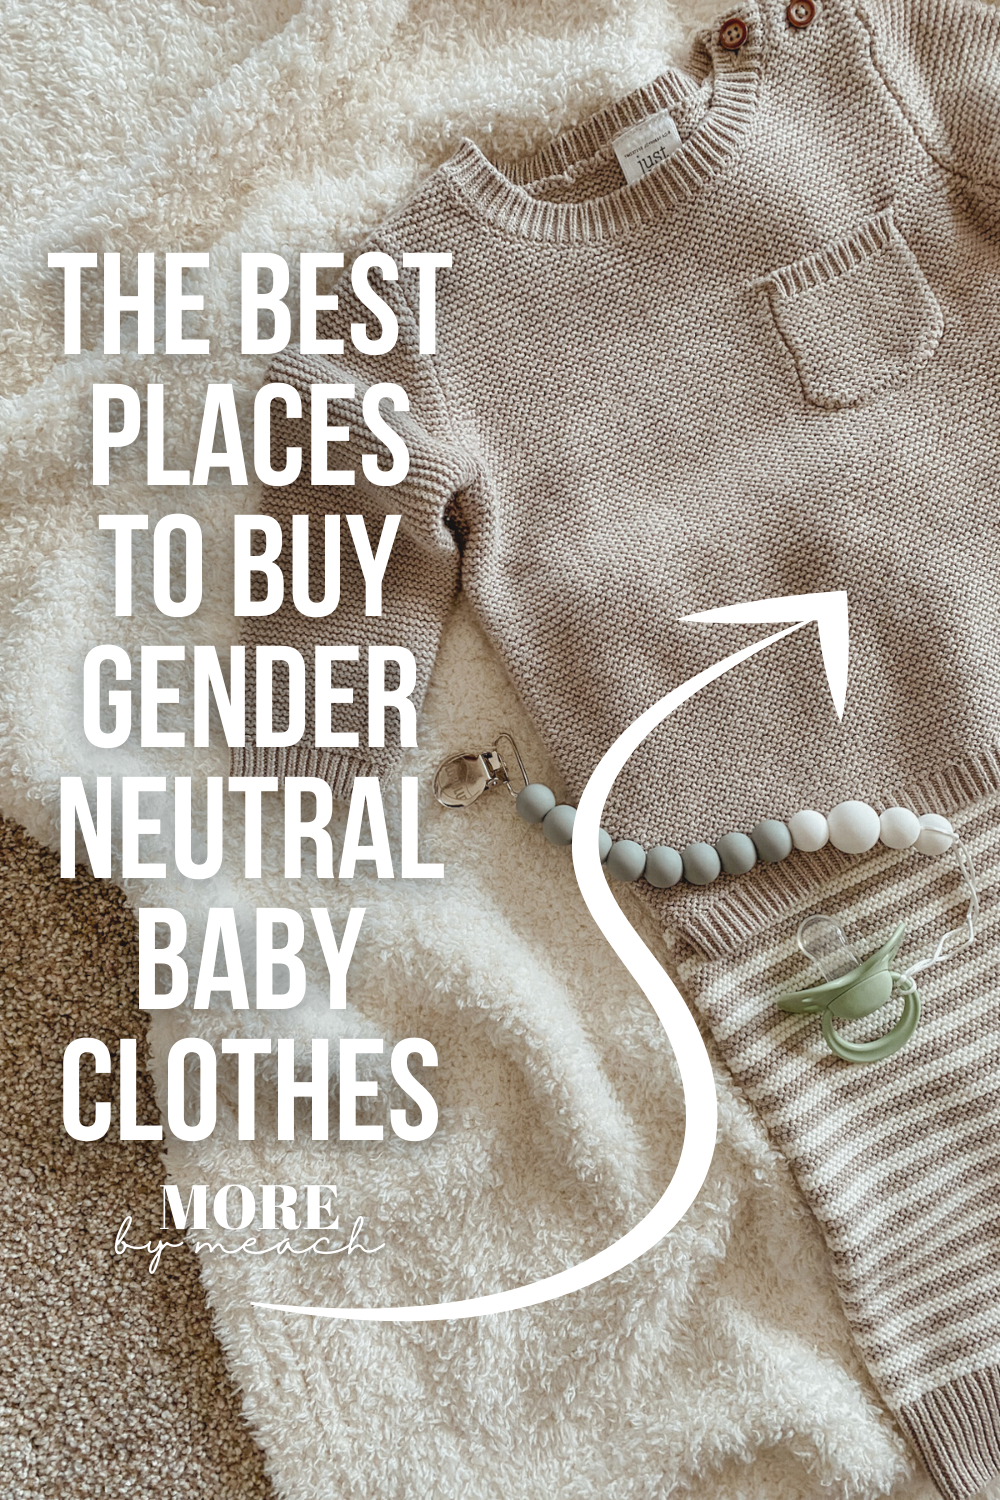 """A graphic that says """"The Best Places to Buy Gender Neutral Baby Clothes""""."""